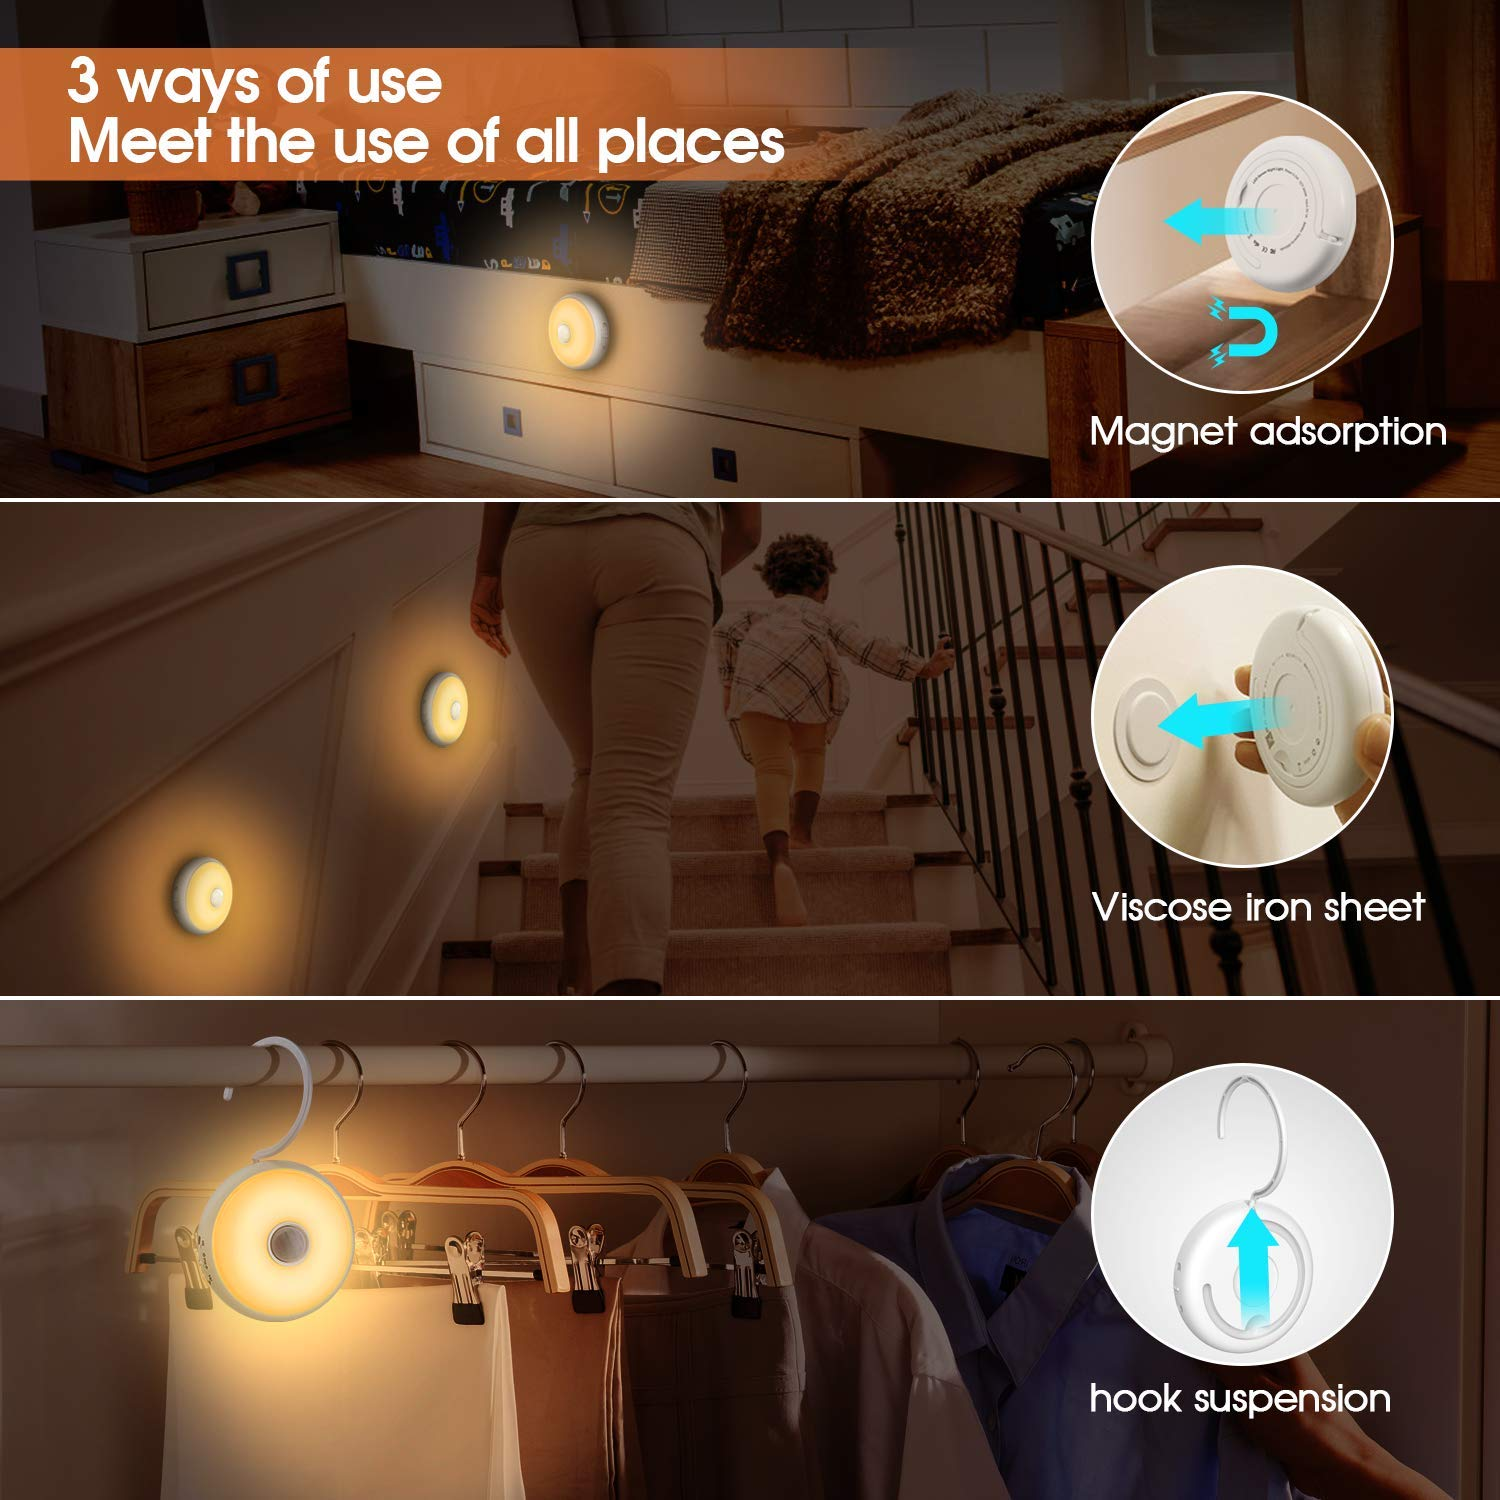 FXQ Motion Sensor LED Night Light, USB Rechargeable Portable Closet Light, Dimmable Cordless Wall Light, Magnetic Stick Hanging, for Under Cabinet, Stairs, Hallway, Kids Room, Bedroom (2 Pack)